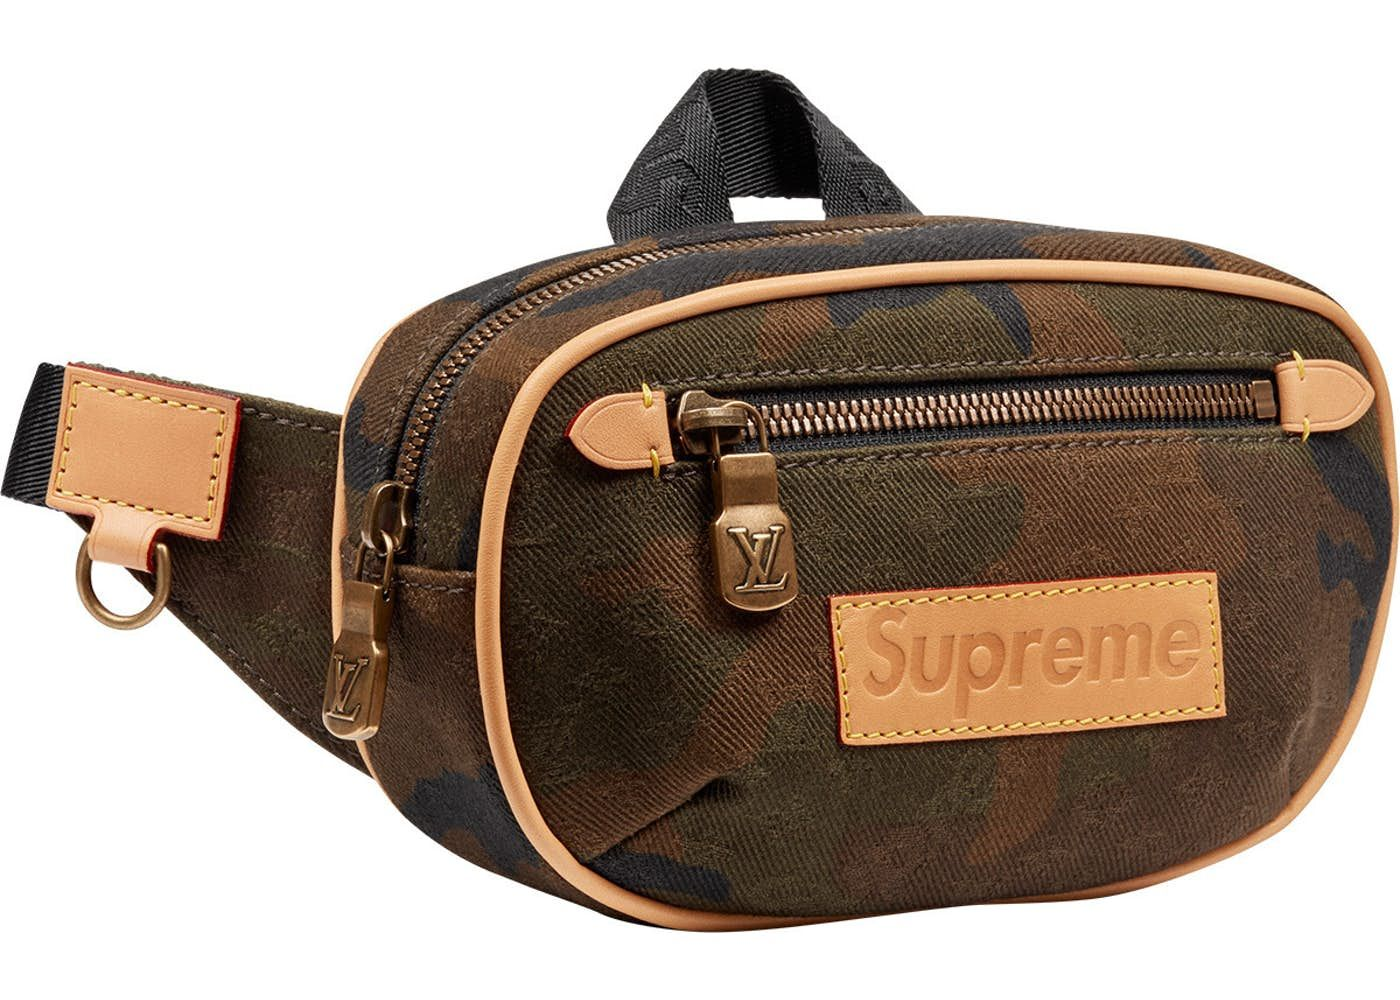 9f58628430f6 Louis Vuitton x Supreme Bumbag Monogram Camo PM Camo in 2019 ...